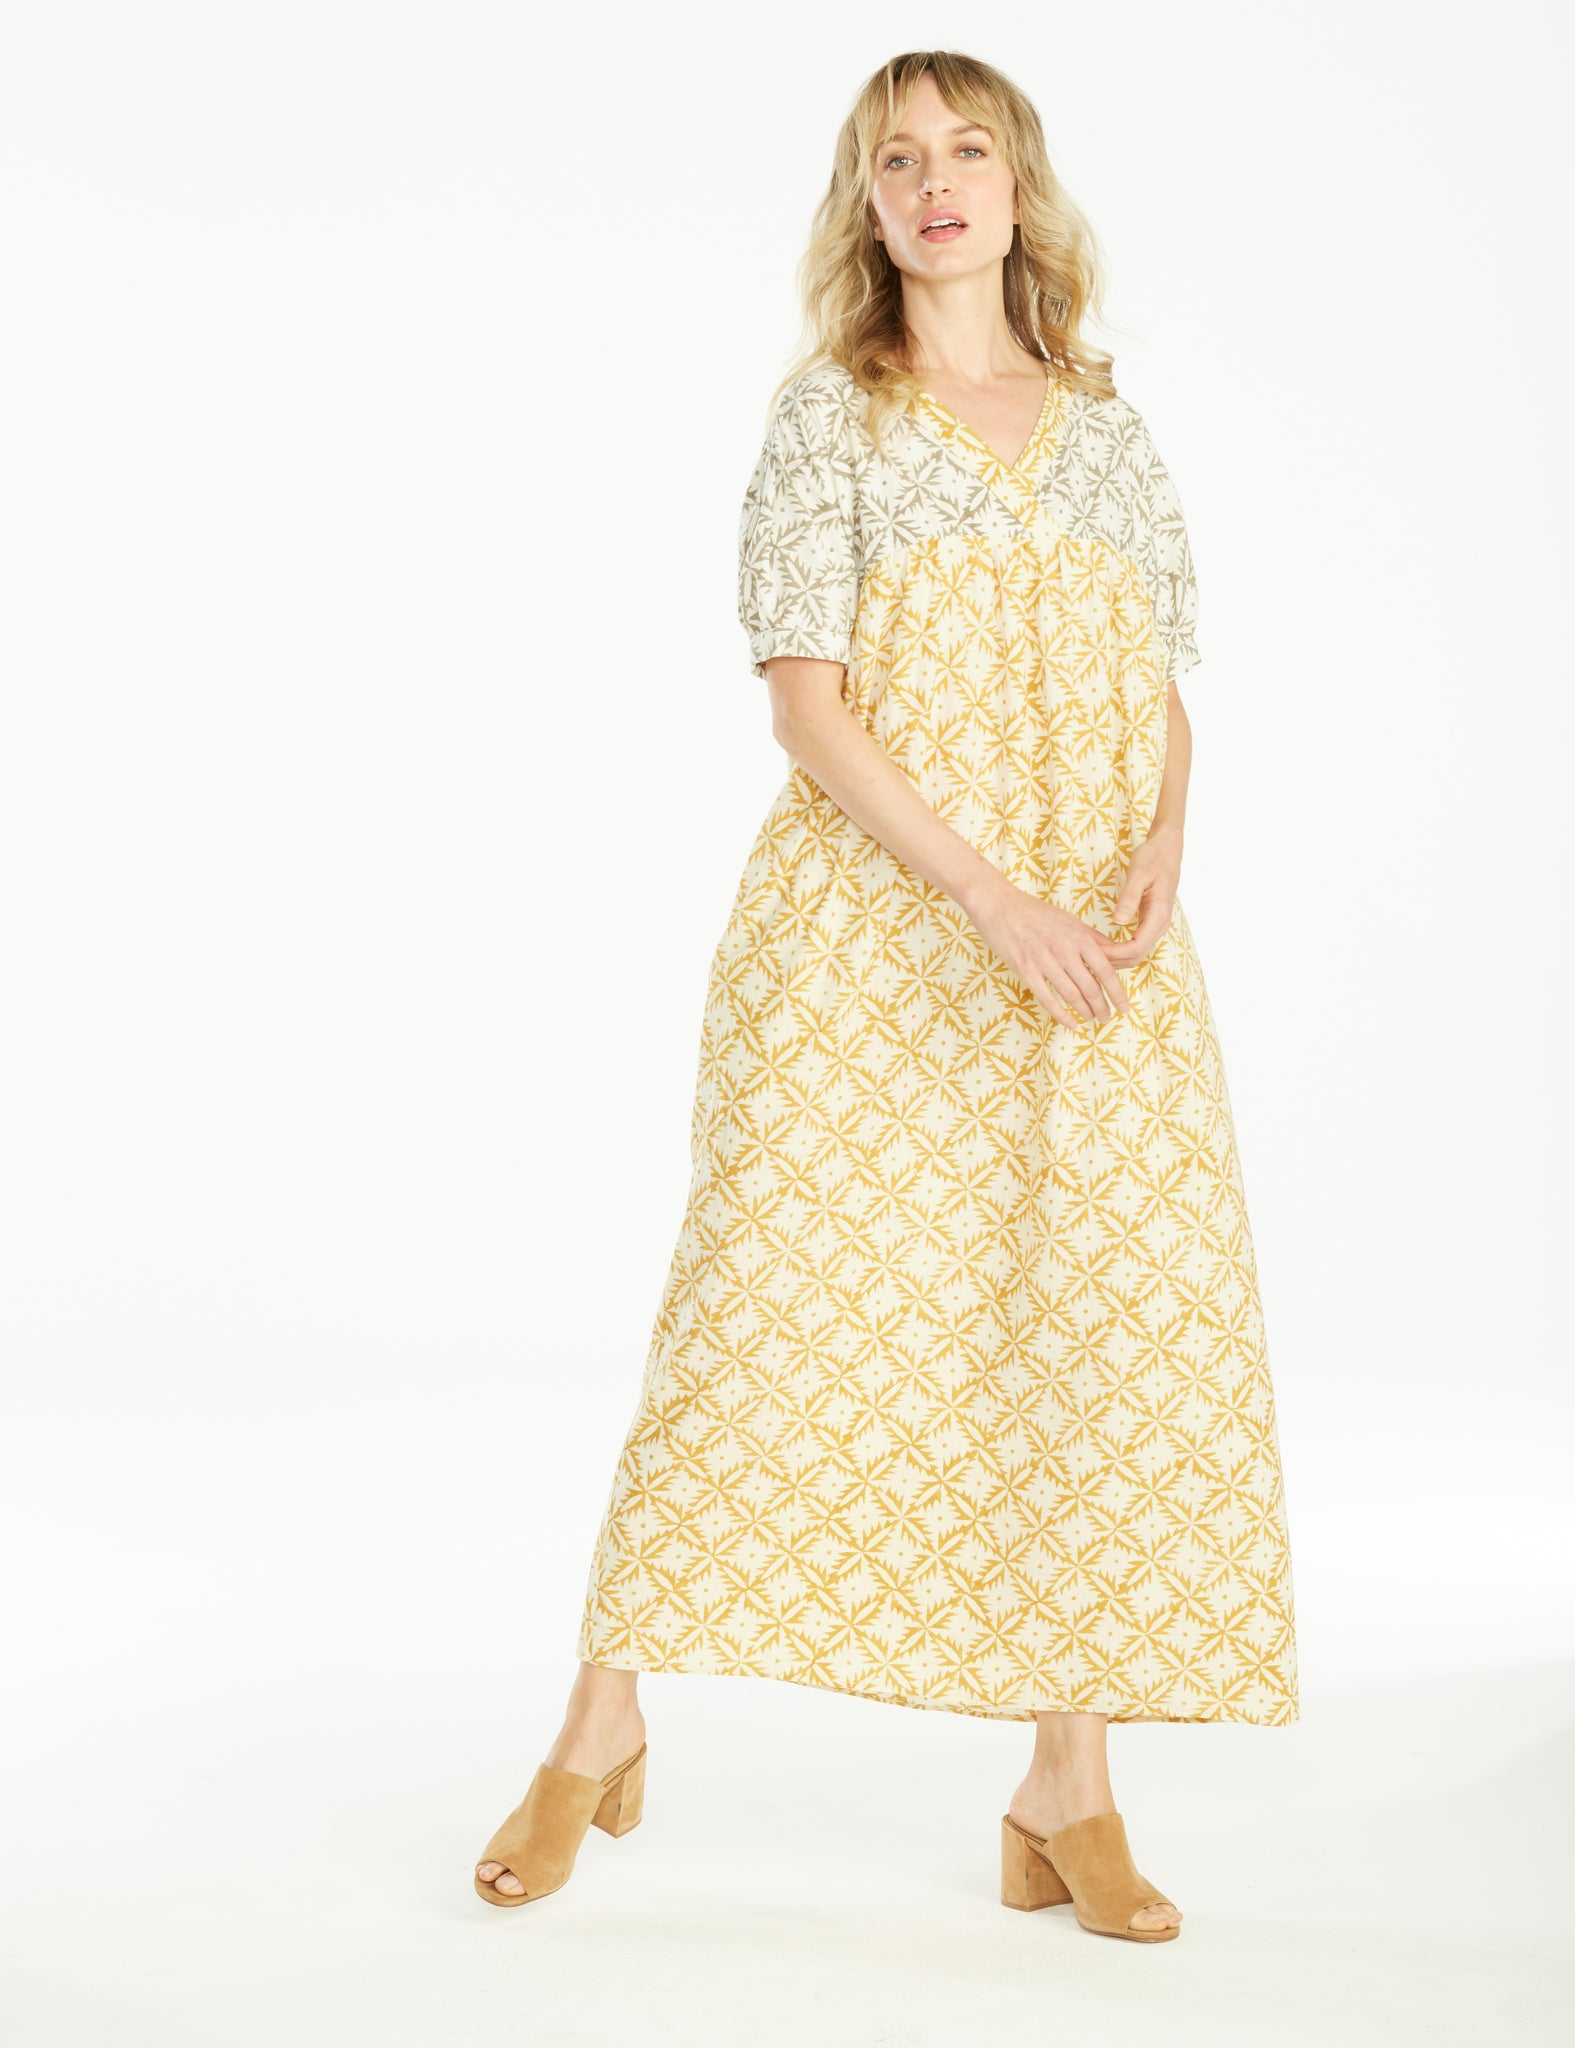 Taylor Dress Marigold - Style #181